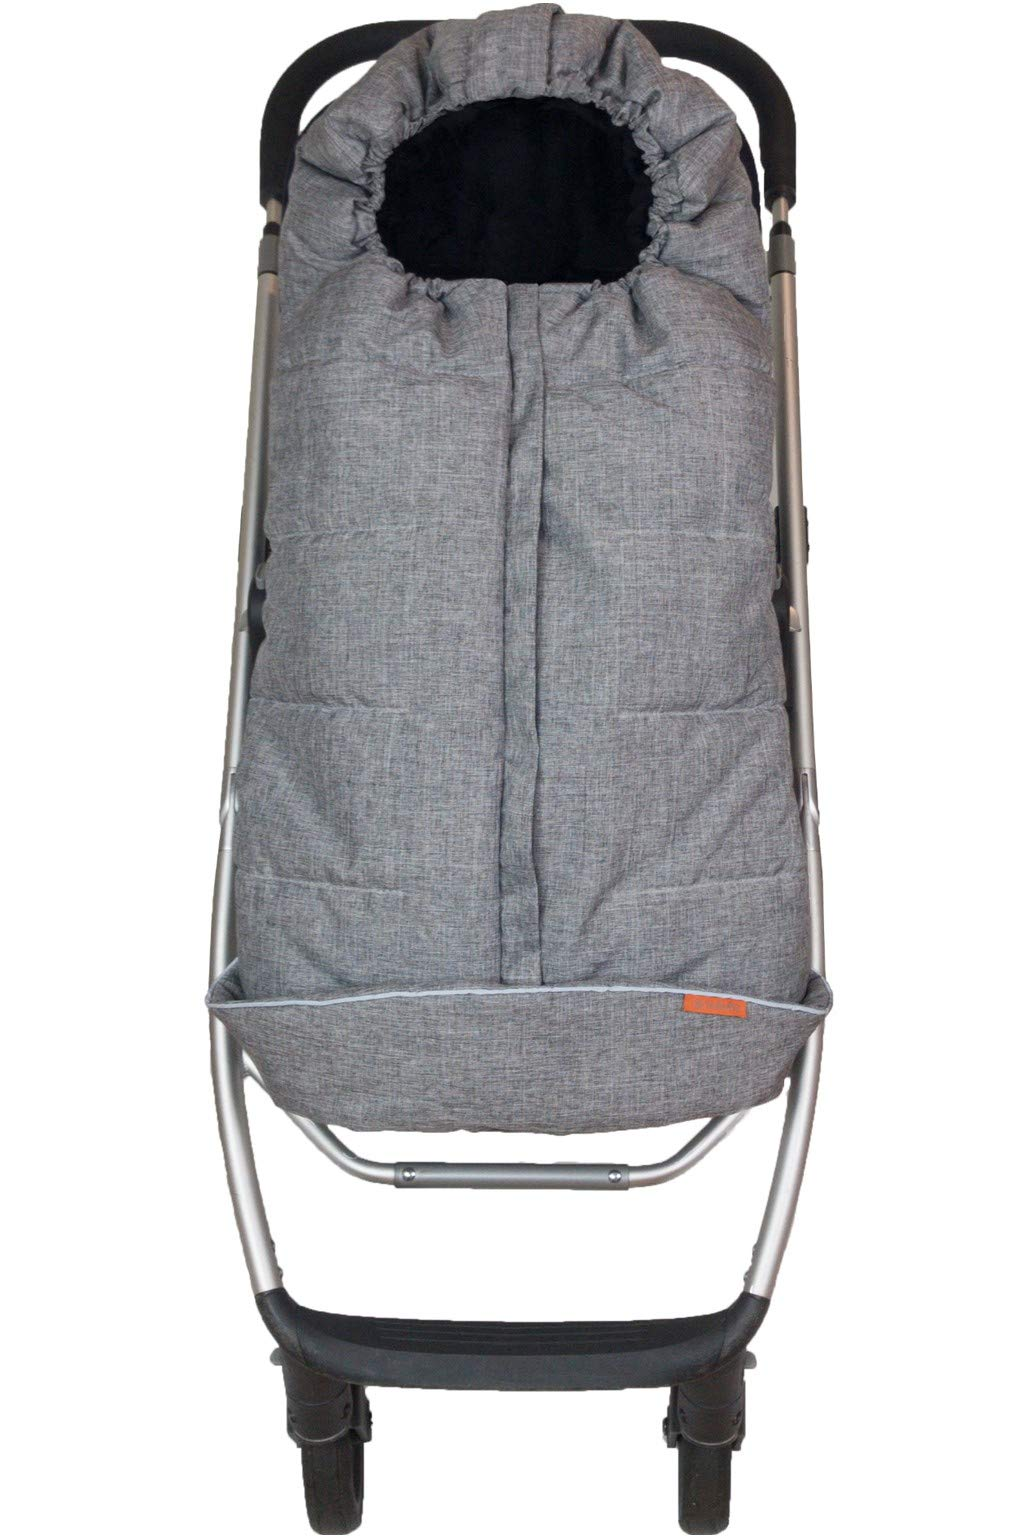 liuliuby CozyMuff Toddler Size – Weatherproof Footmuff with Temperature Control – Universal Fit for Strollers (Heather Gray)